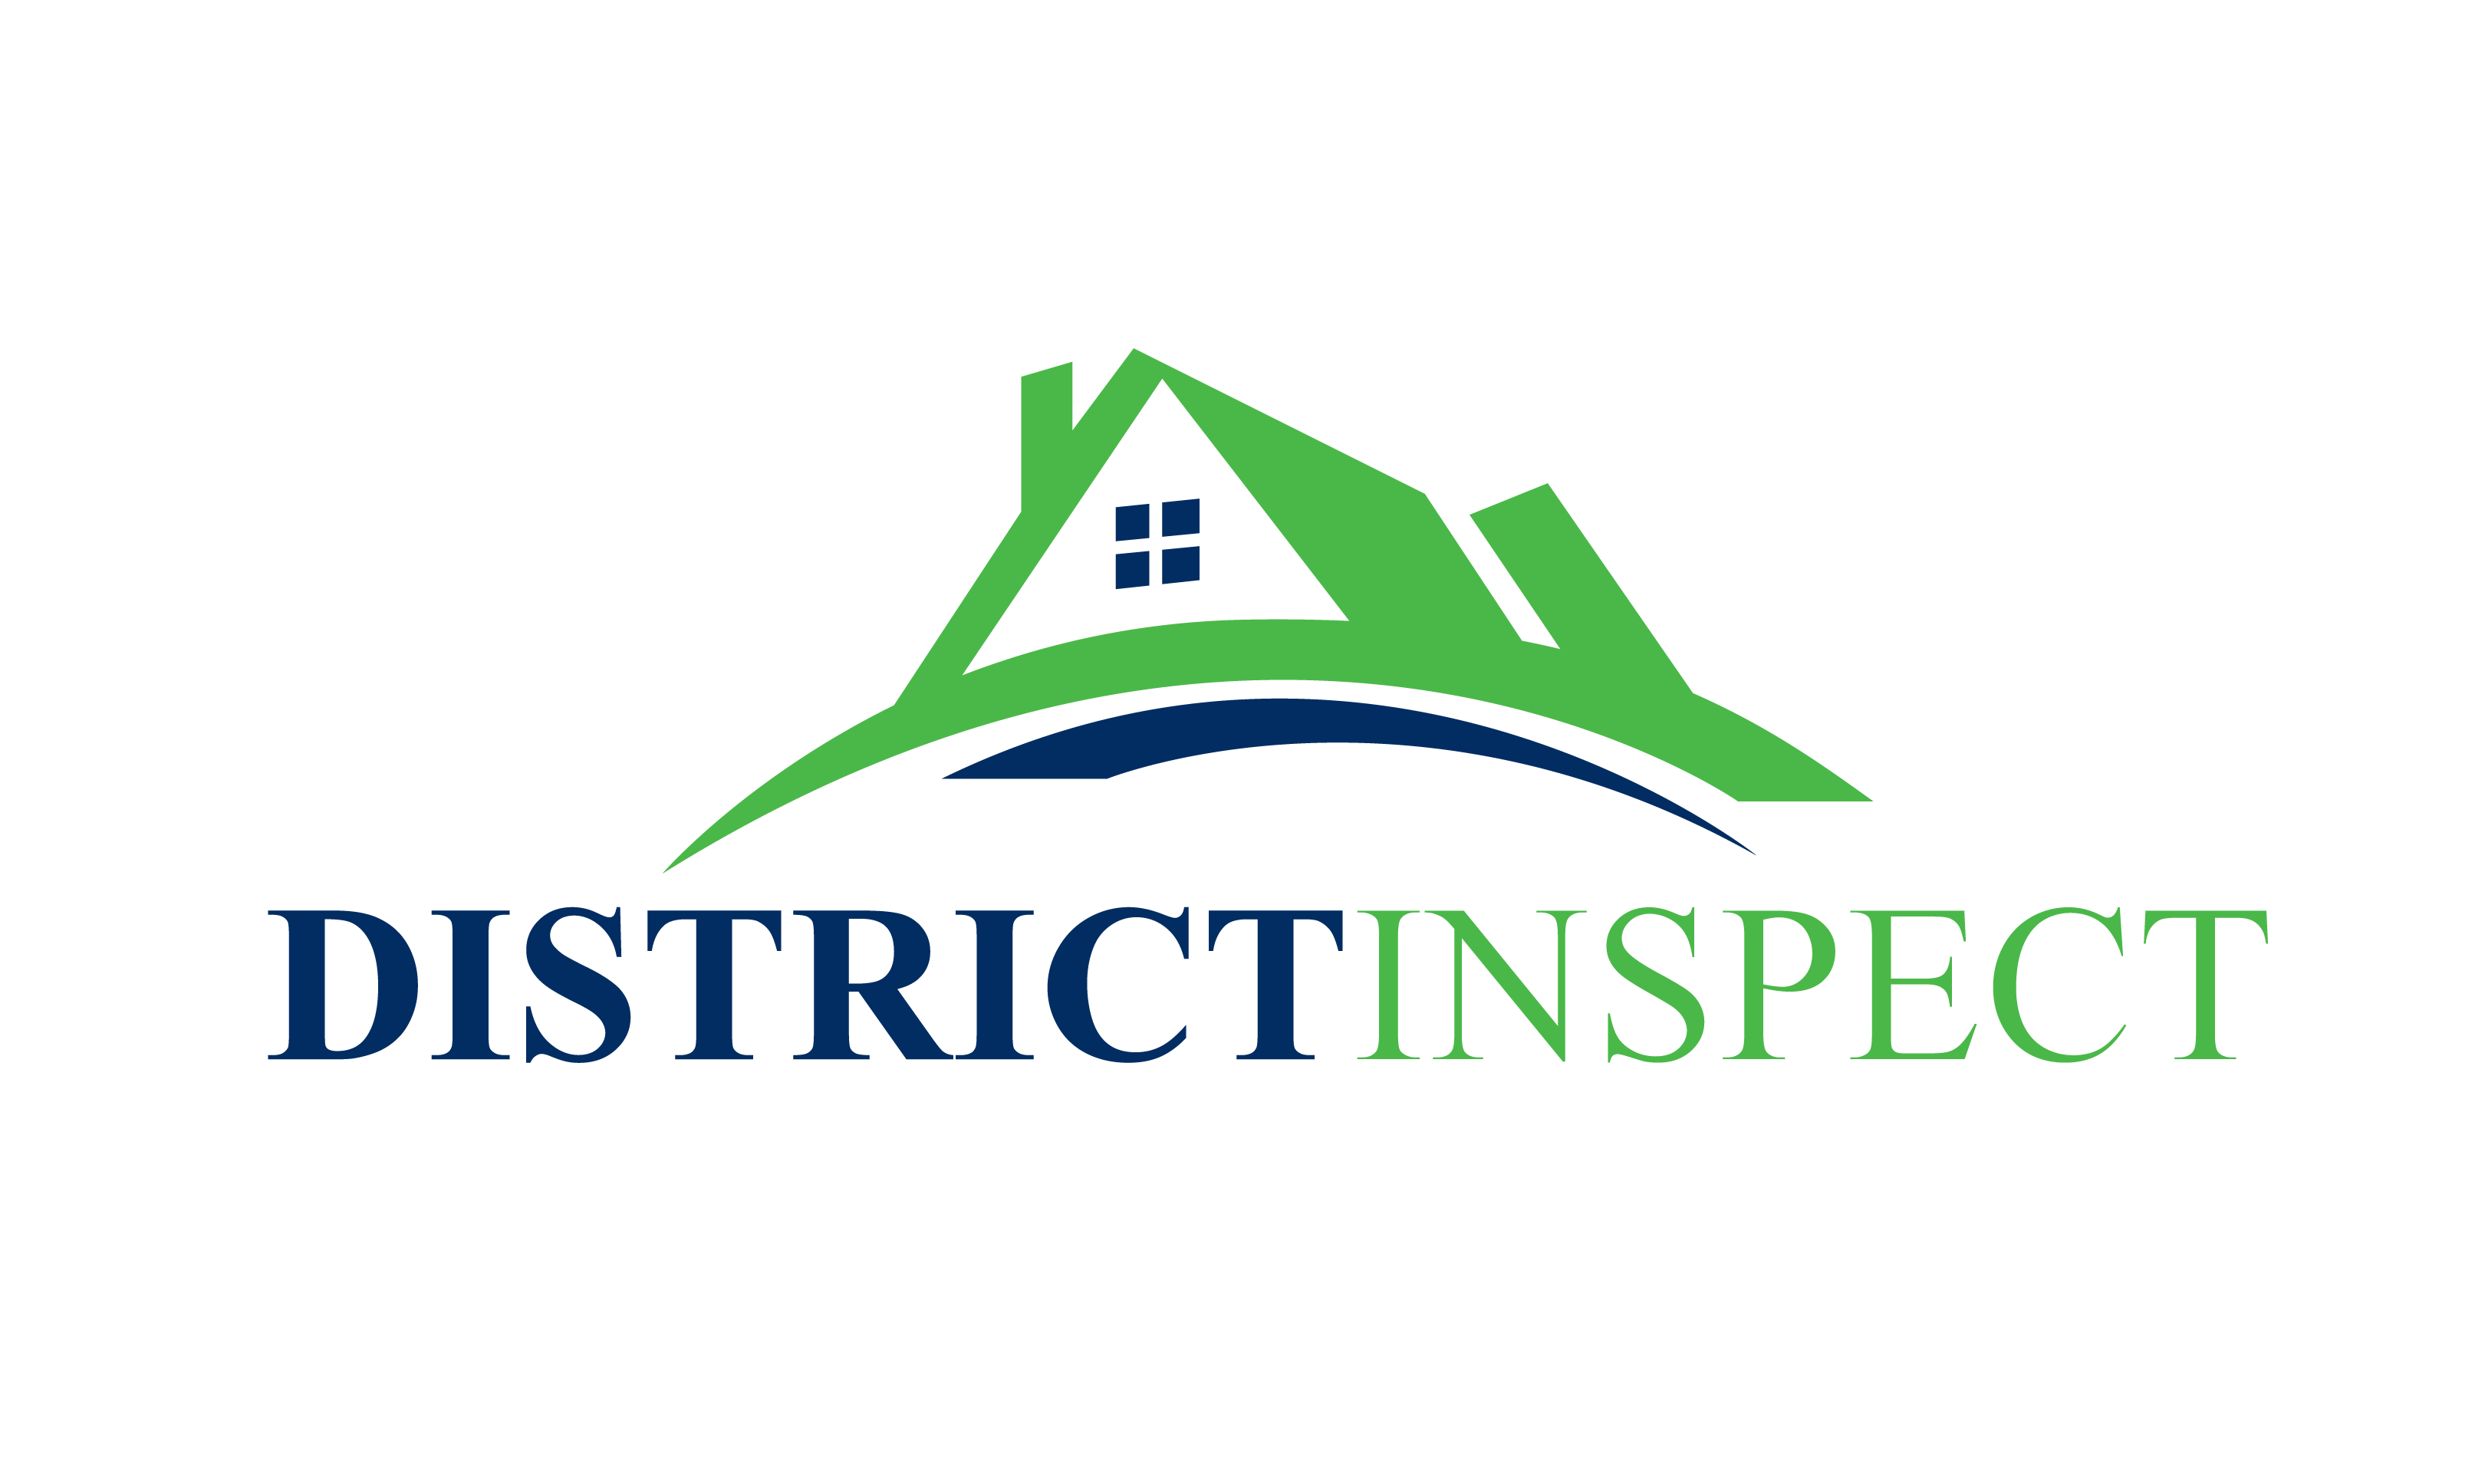 DistrictInspect